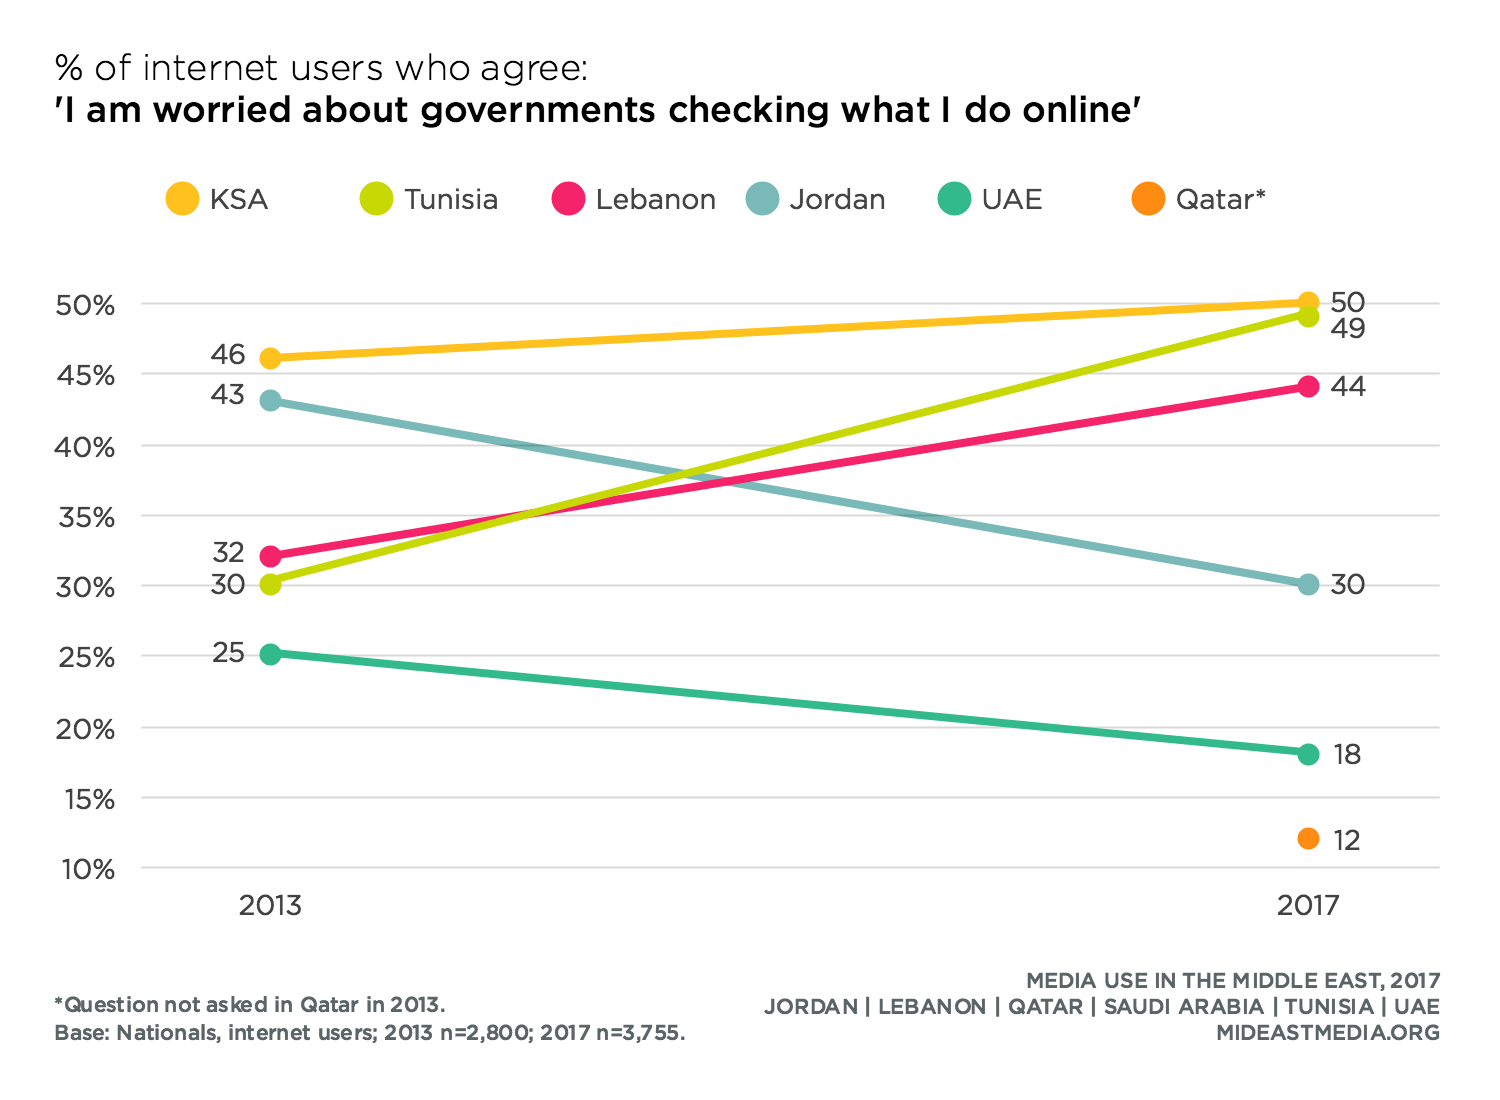 Online Privacy · Media Use in the Middle East, 2017